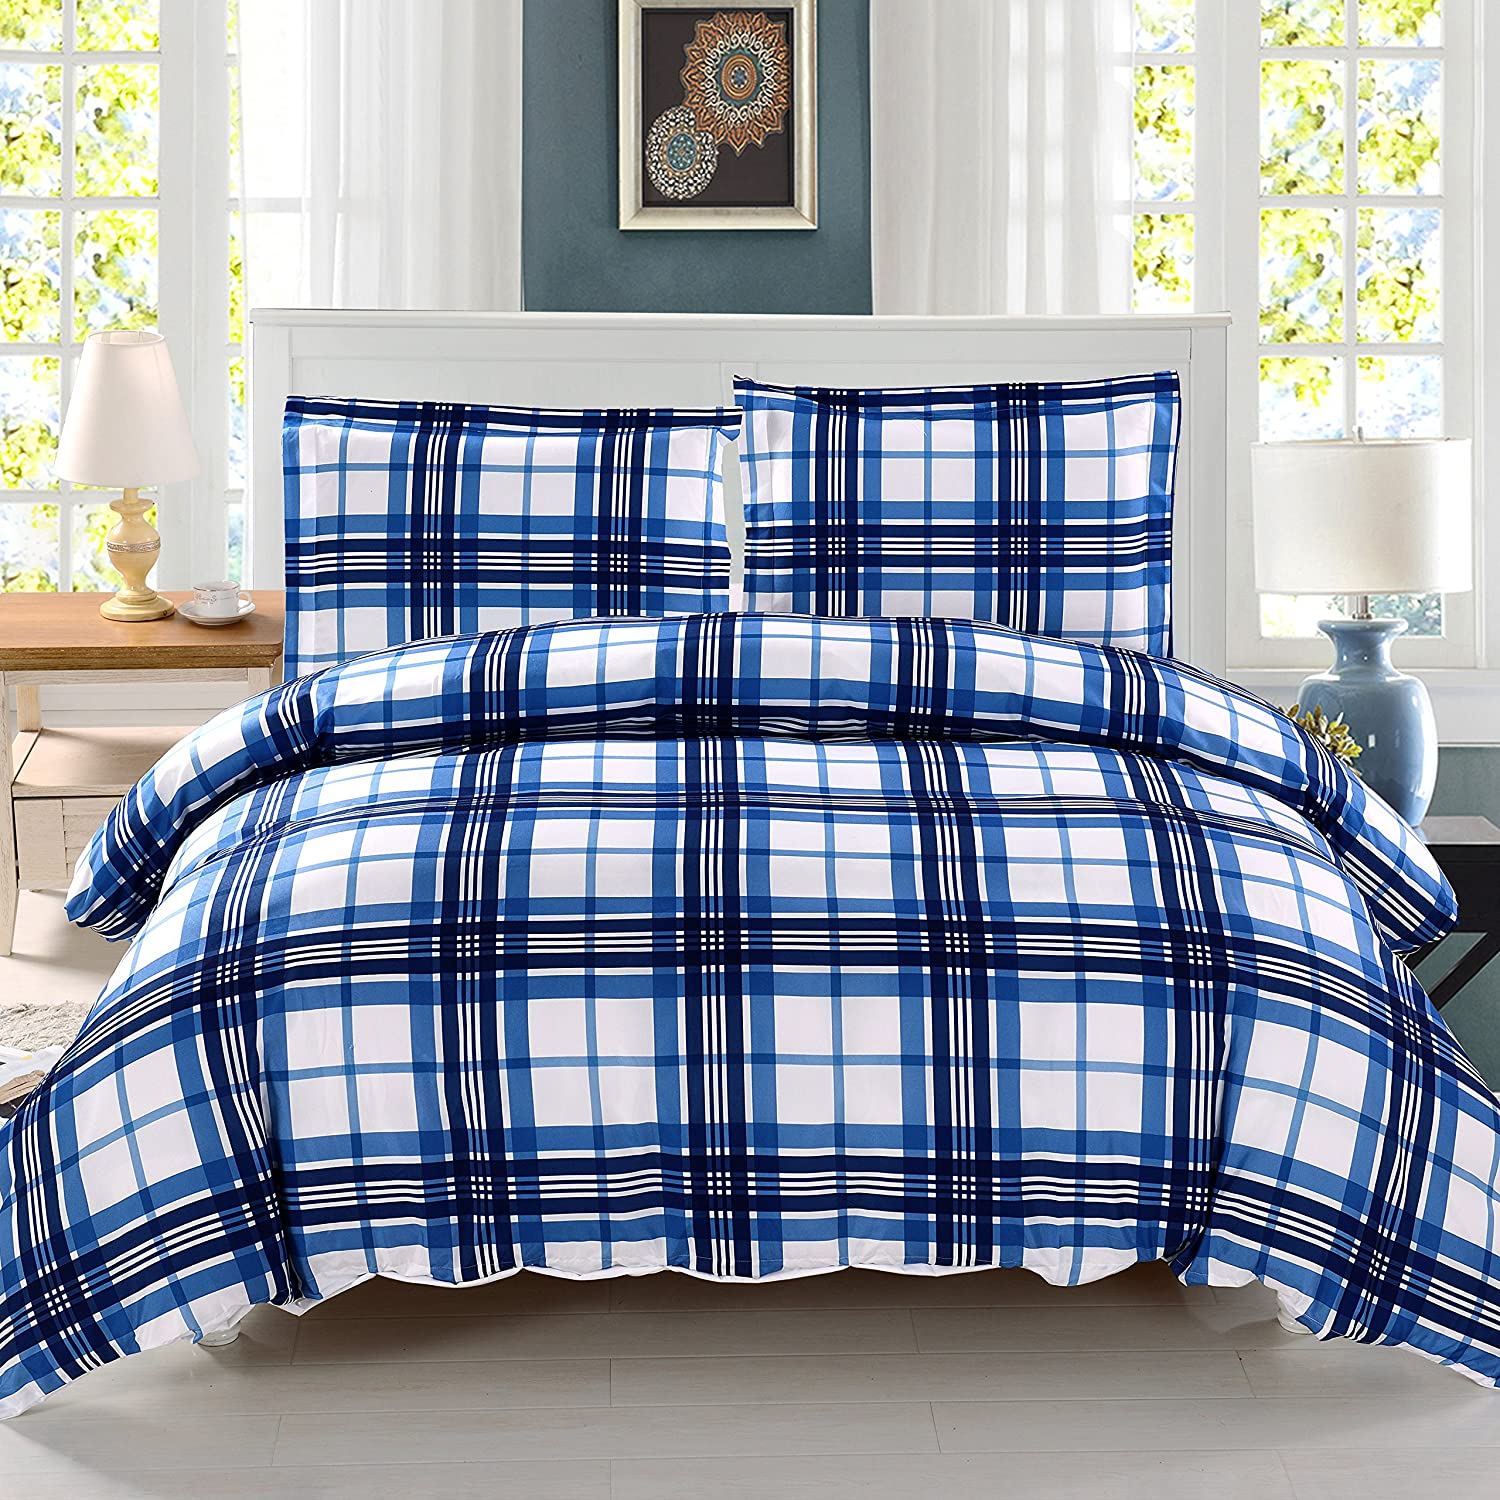 3 Pieces Blue Plaid Duvet Cover Set Full/Queen Size - Luxury Duvet Cover with 2 Pillow Shams by Exclusivo Mezcla